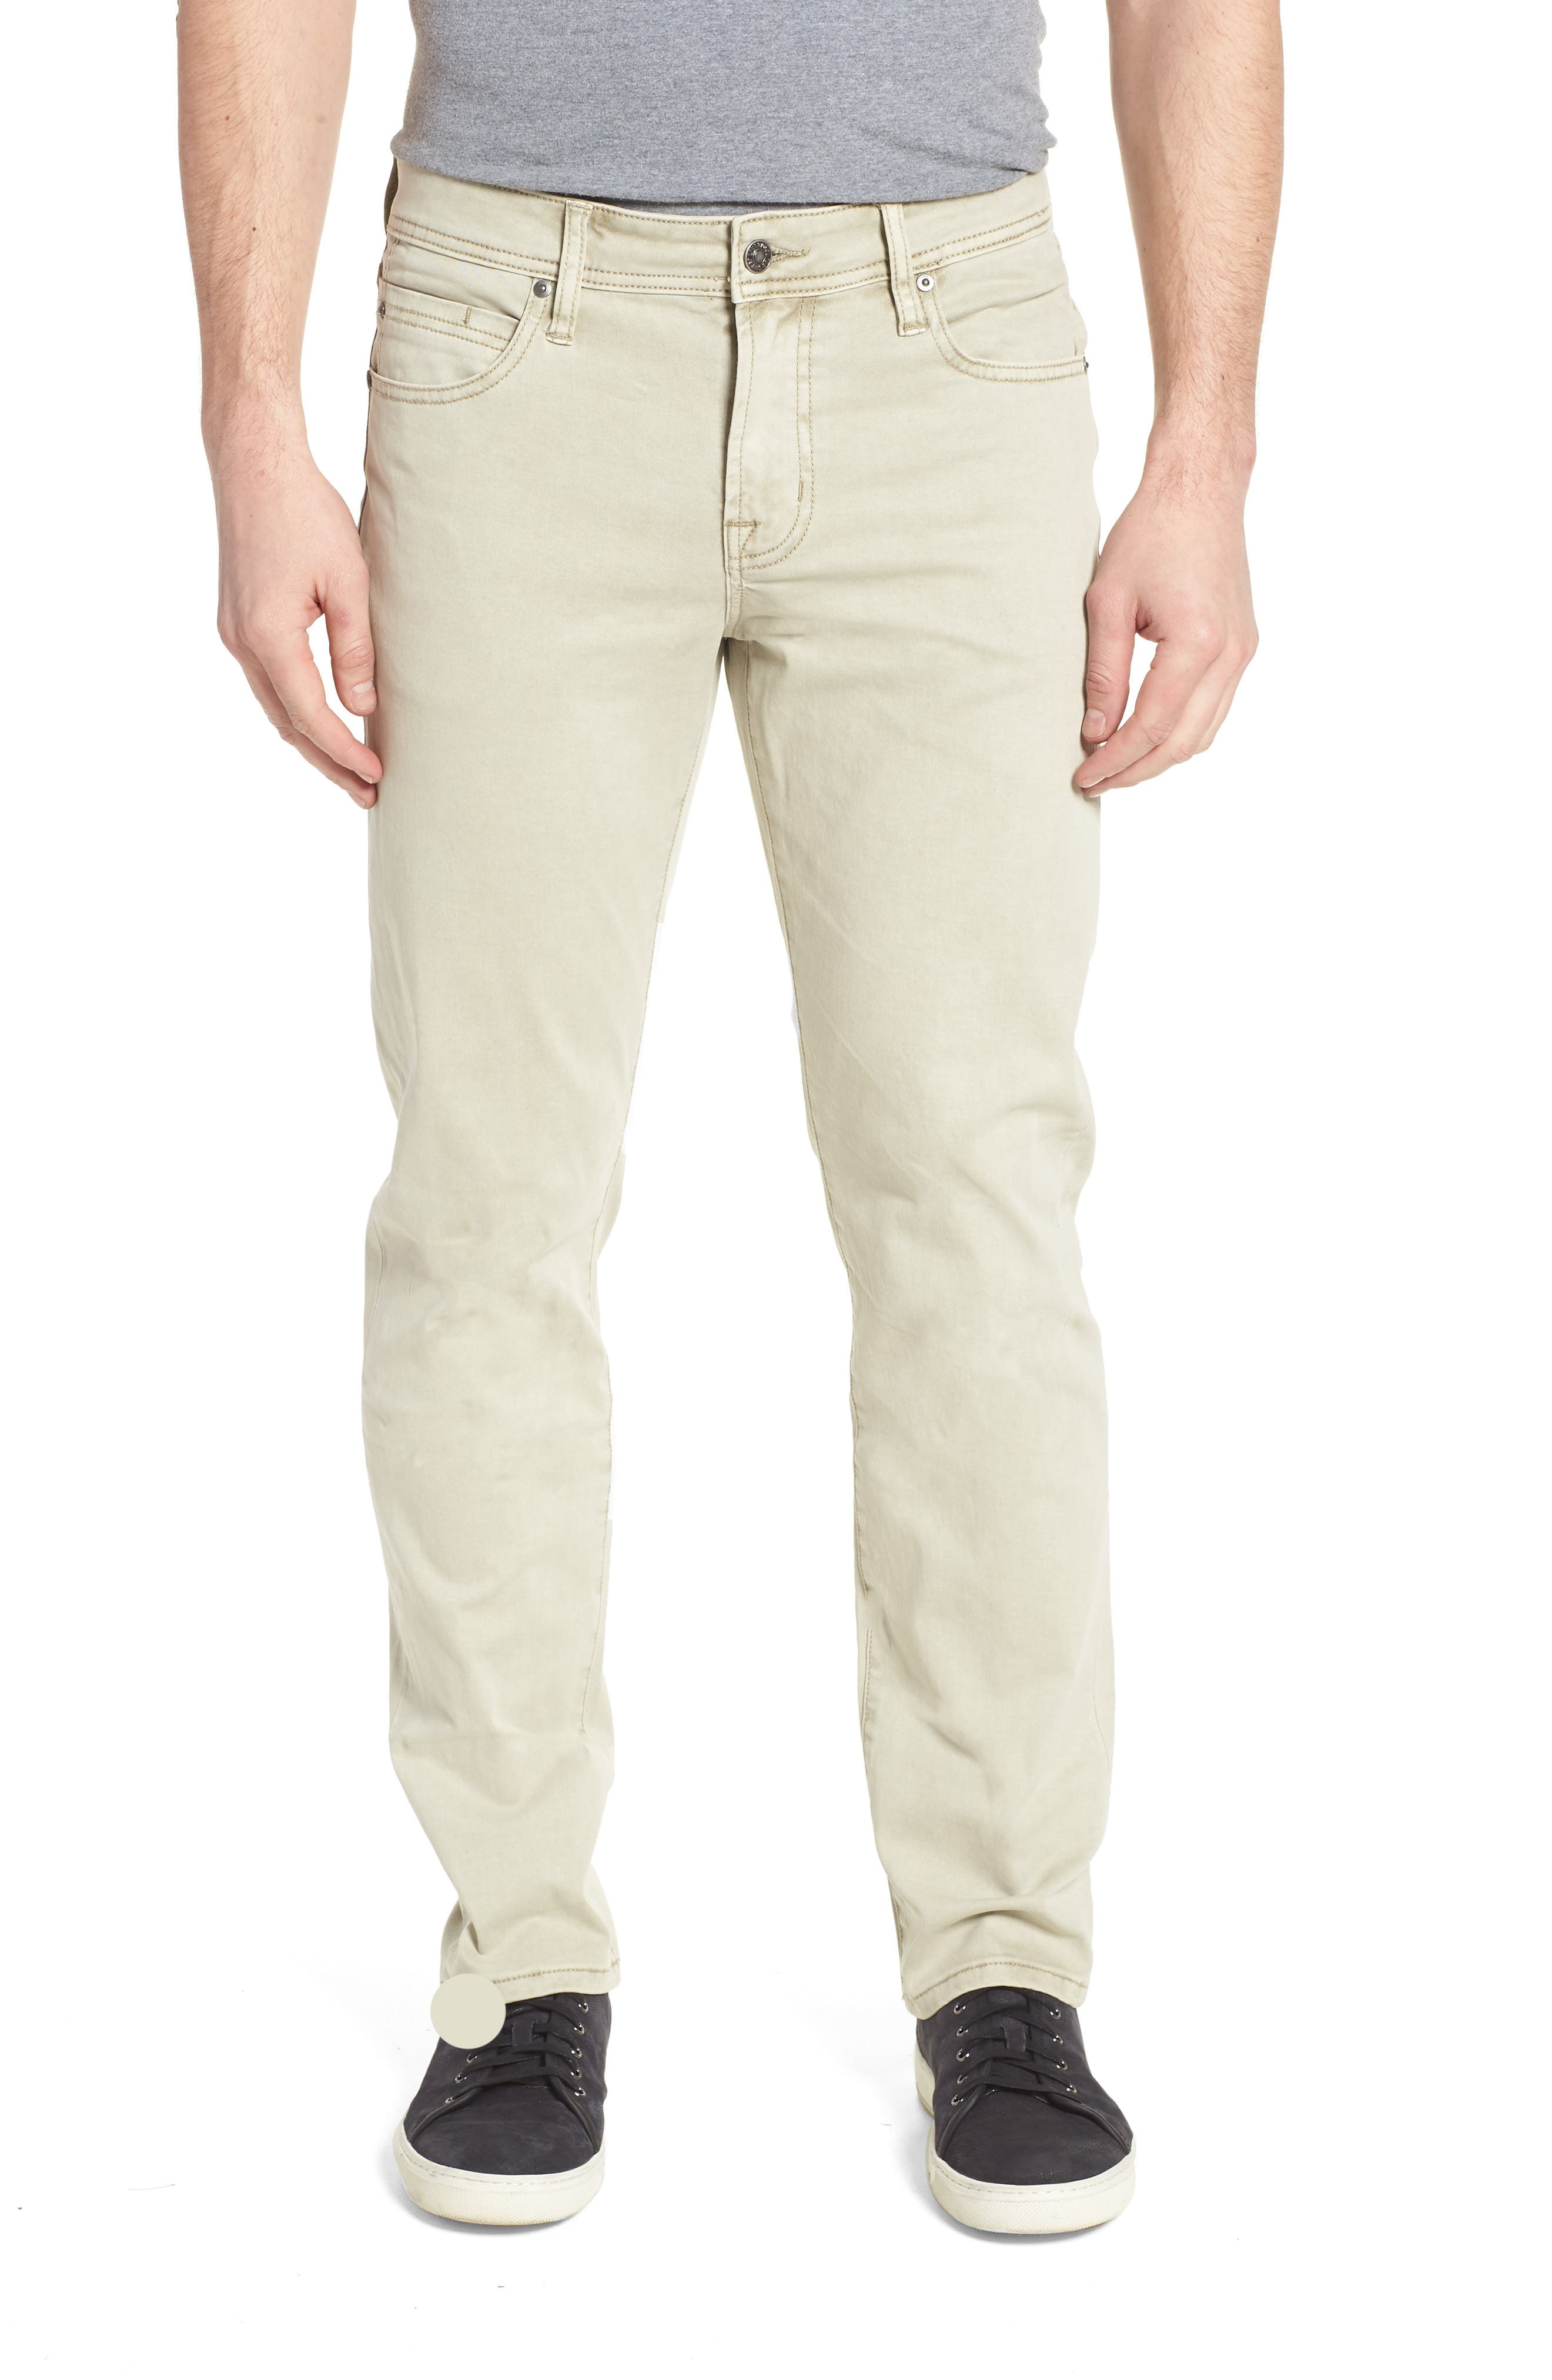 Jeans Co. Straight Leg Jeans,                             Main thumbnail 1, color,                             Sandstrom